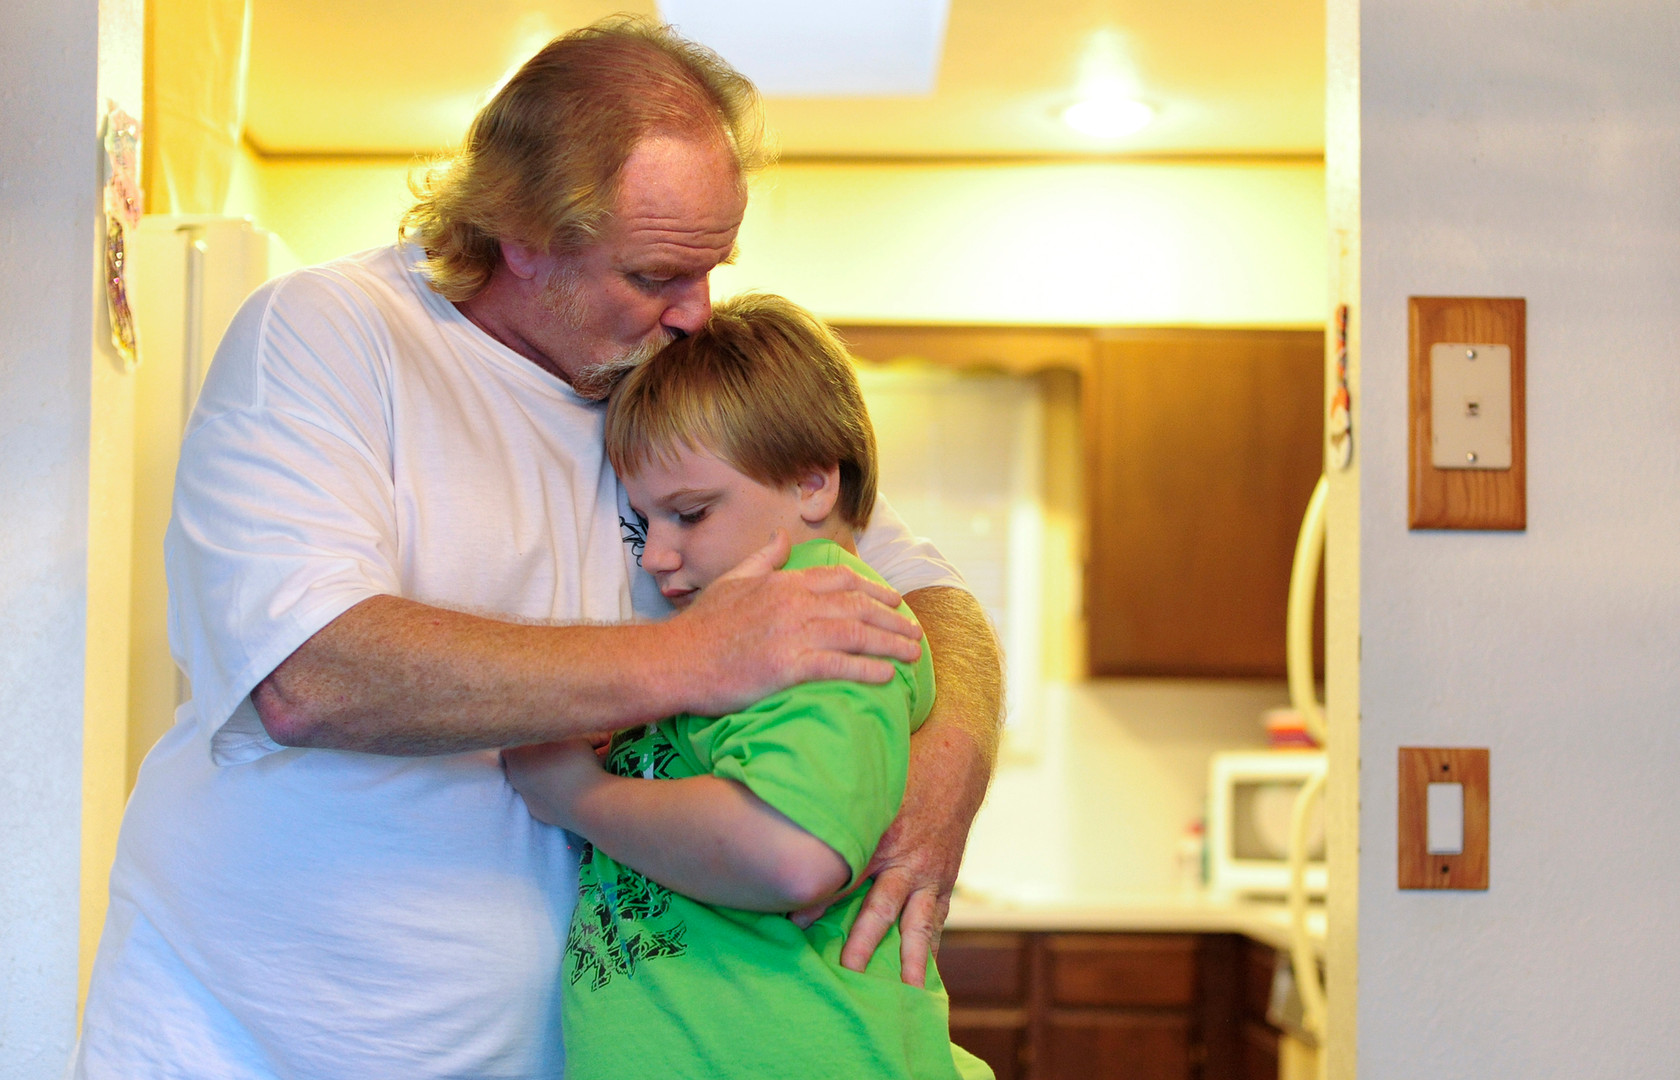 Derek Claiborne embraces his 12-year-old son Bradley who has autism. Claiborne said most kids with autism don't show much affection, but Bradley is just like a big puppy dog. (The World newspaper)